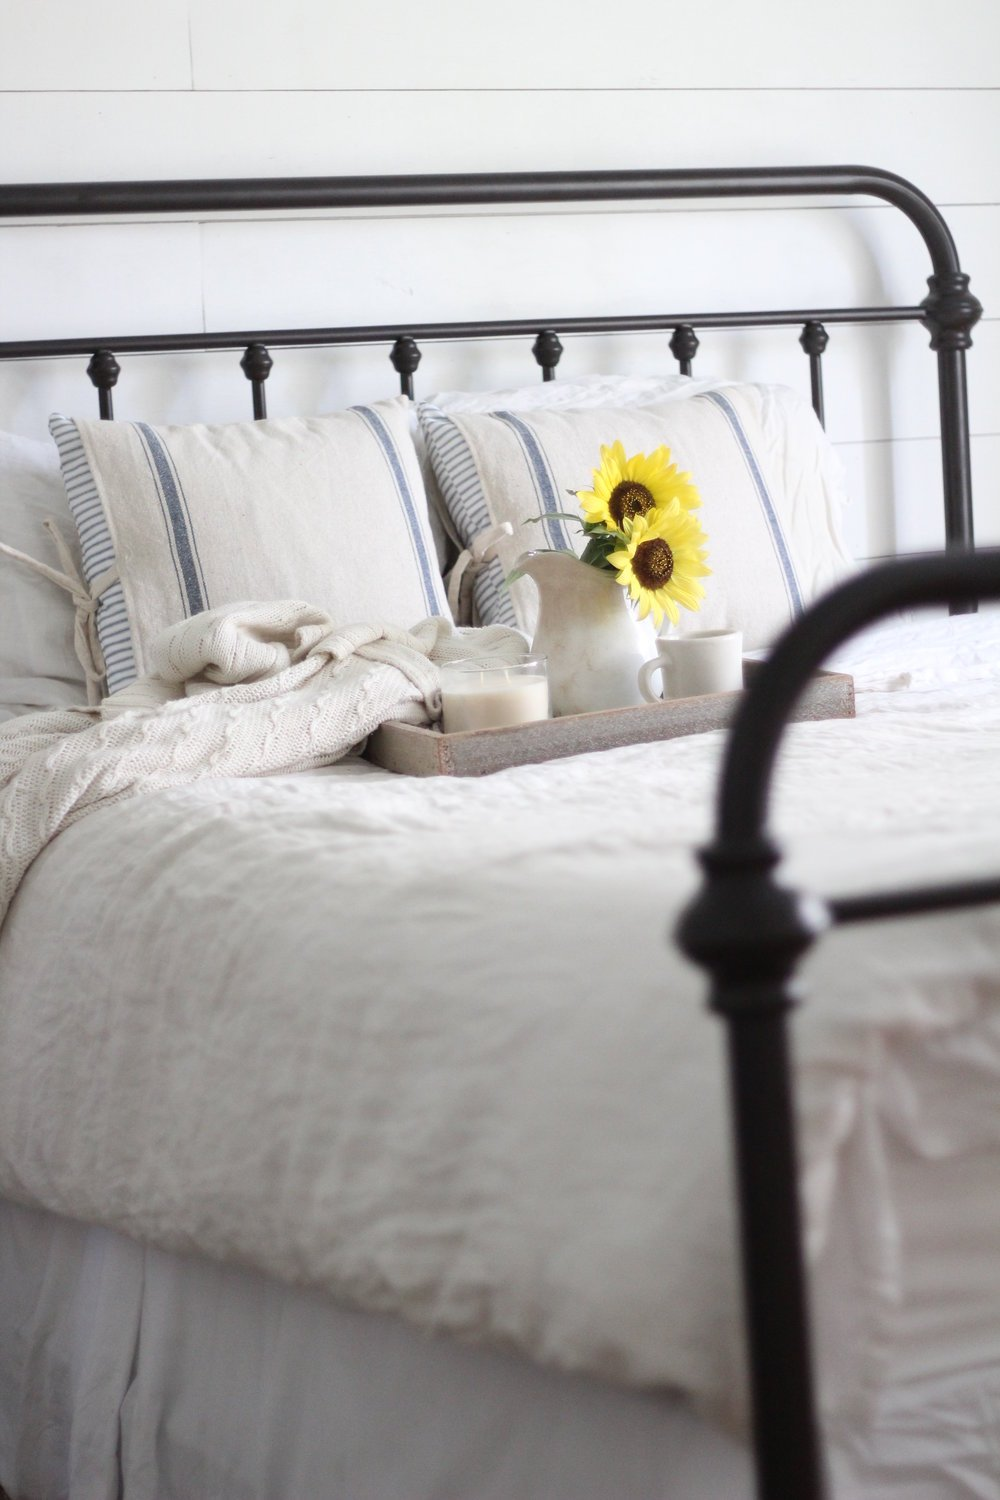 iron bed with linen bedding and a serving tray with a vase of flowers